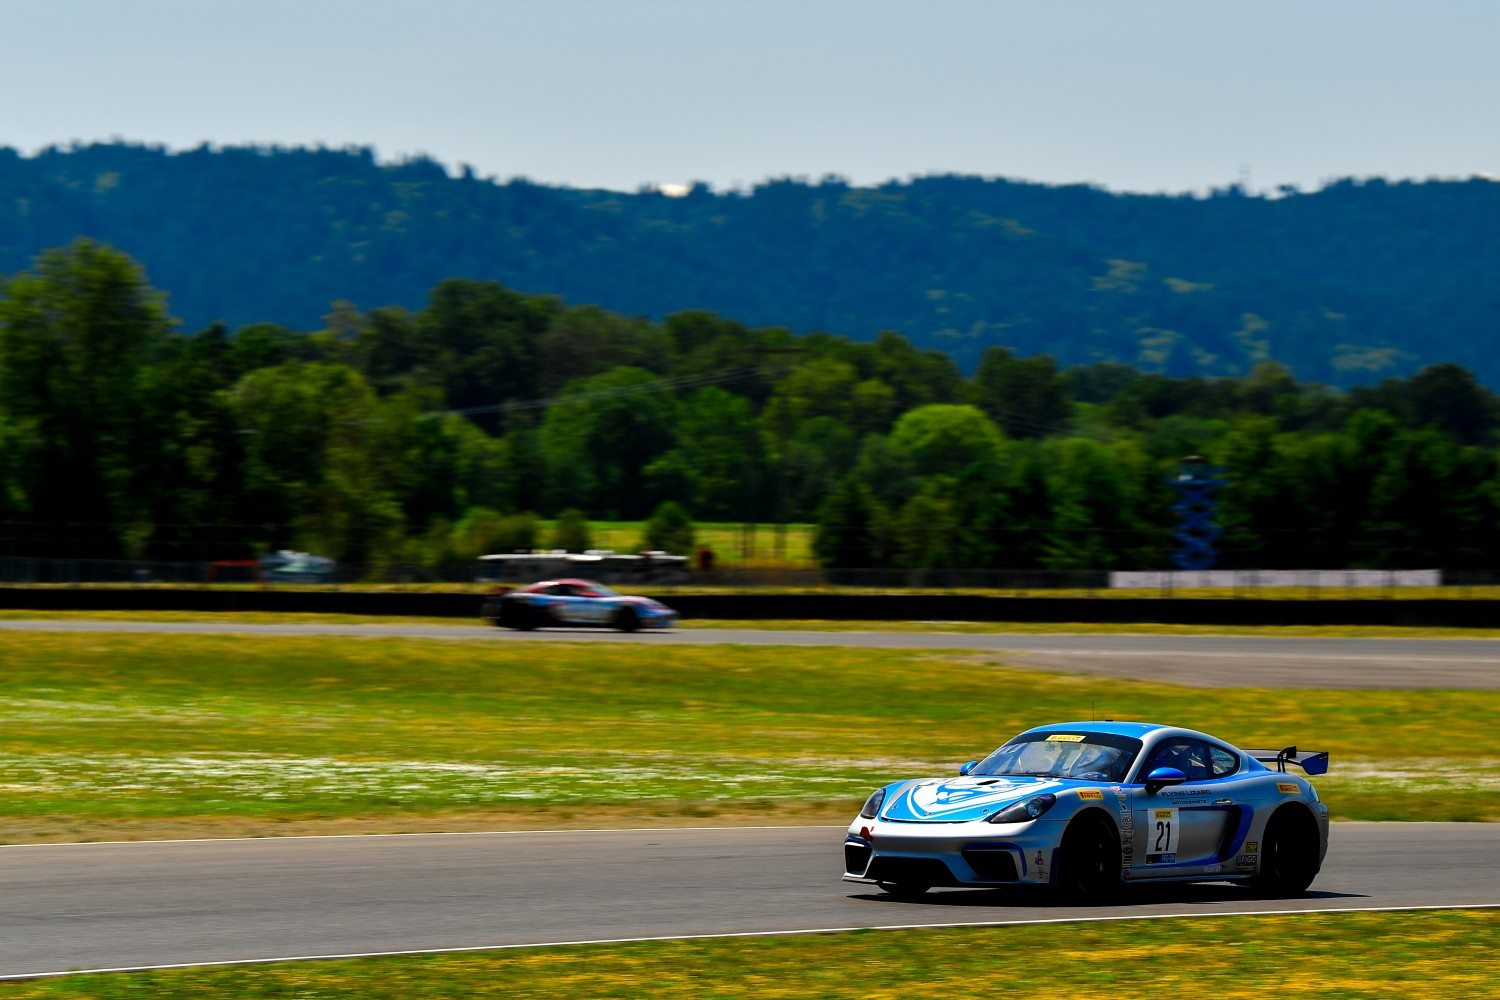 #21 Porsche 718 Cayman CS MR of Michael Dinan and Robby Foley   Rose Cup Races, Portland OR | Gavin Baker/SRO